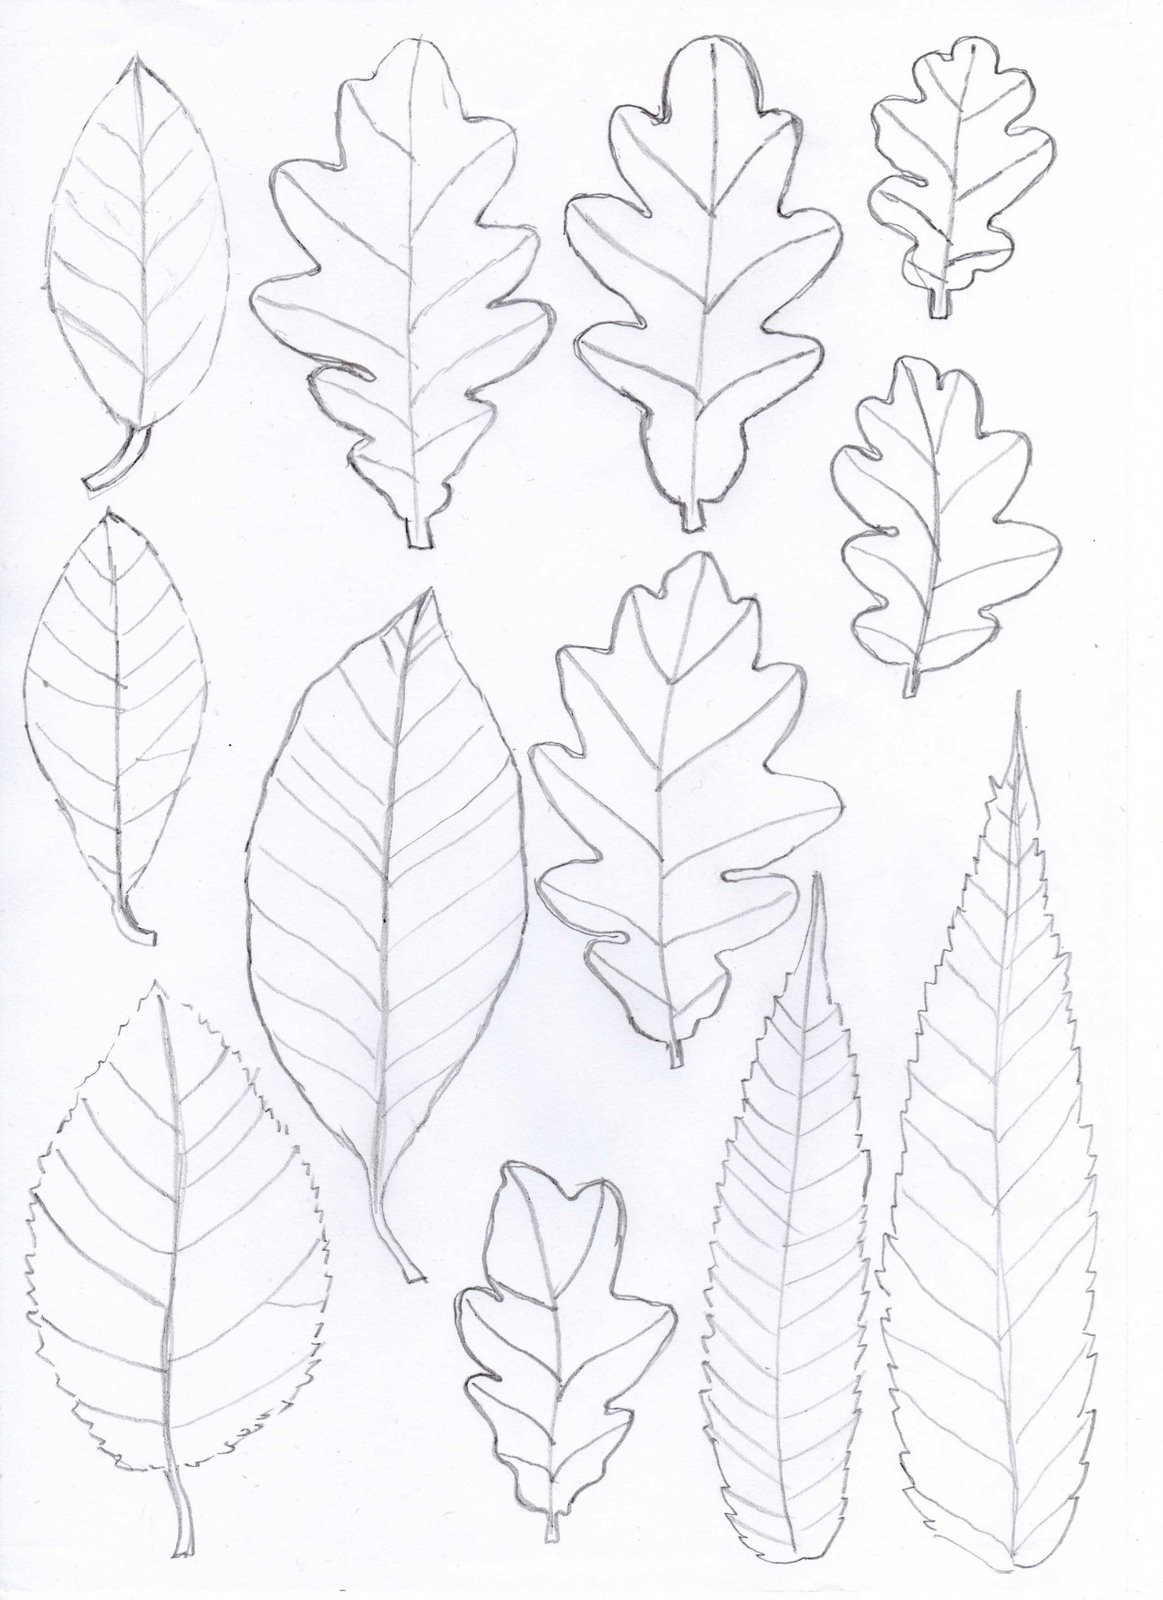 It's just a photo of Lucrative Printable Leaf Patterns